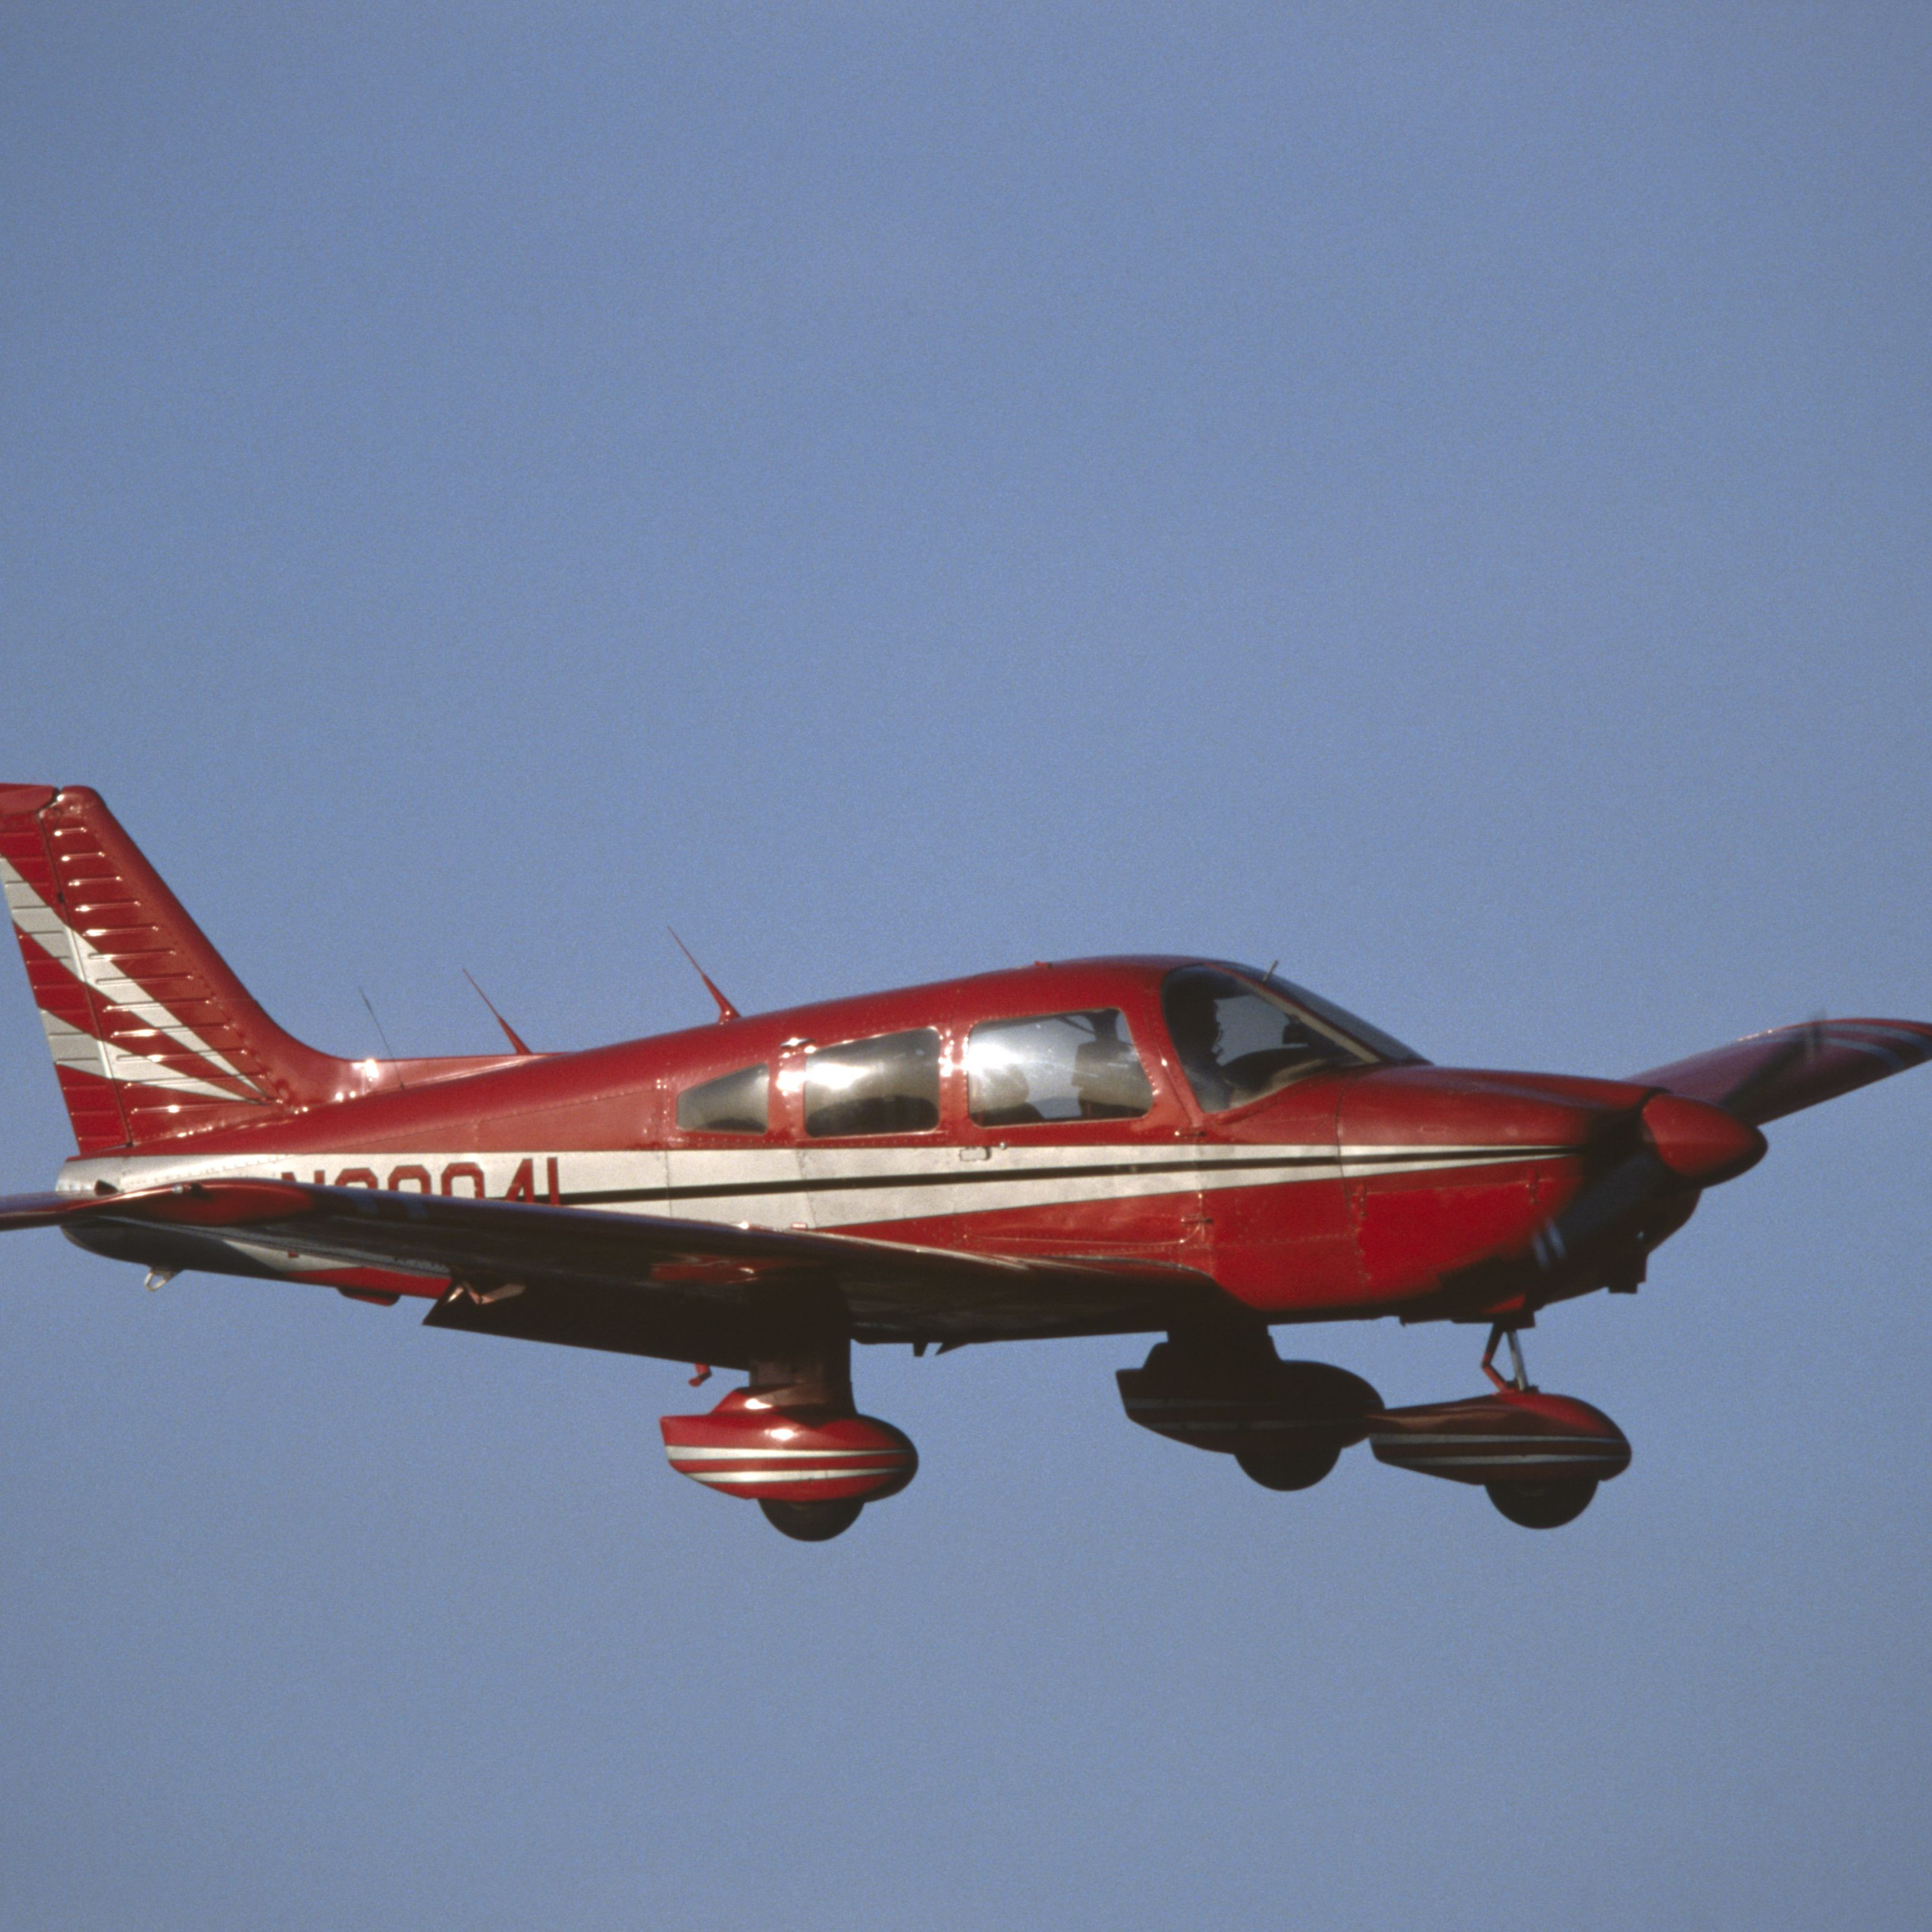 red Piper PA-28 Cherokee flying enroute